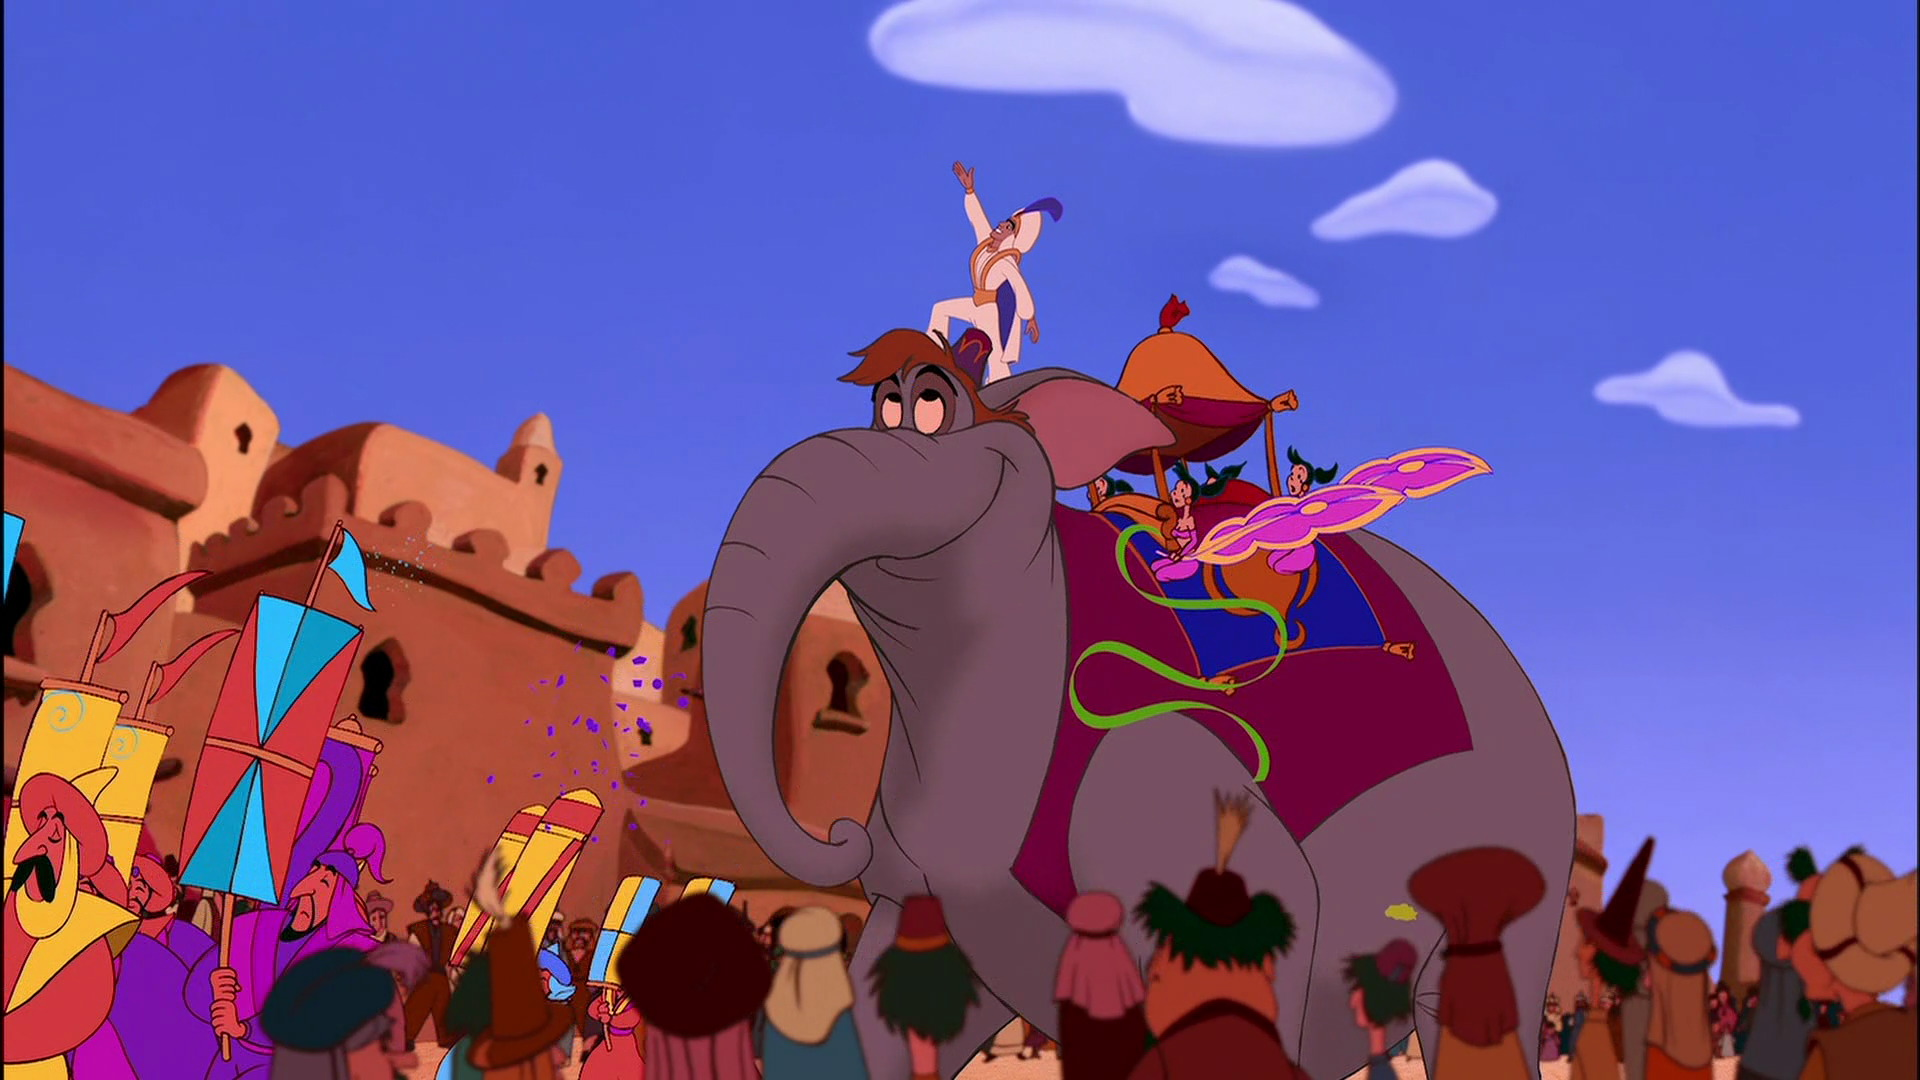 And Were Also Loving That The Replica Taj Mahal Is Riding On An Elephants Back Just LikeYOU KNOWAladdin Himself During His Prince Ali Parade